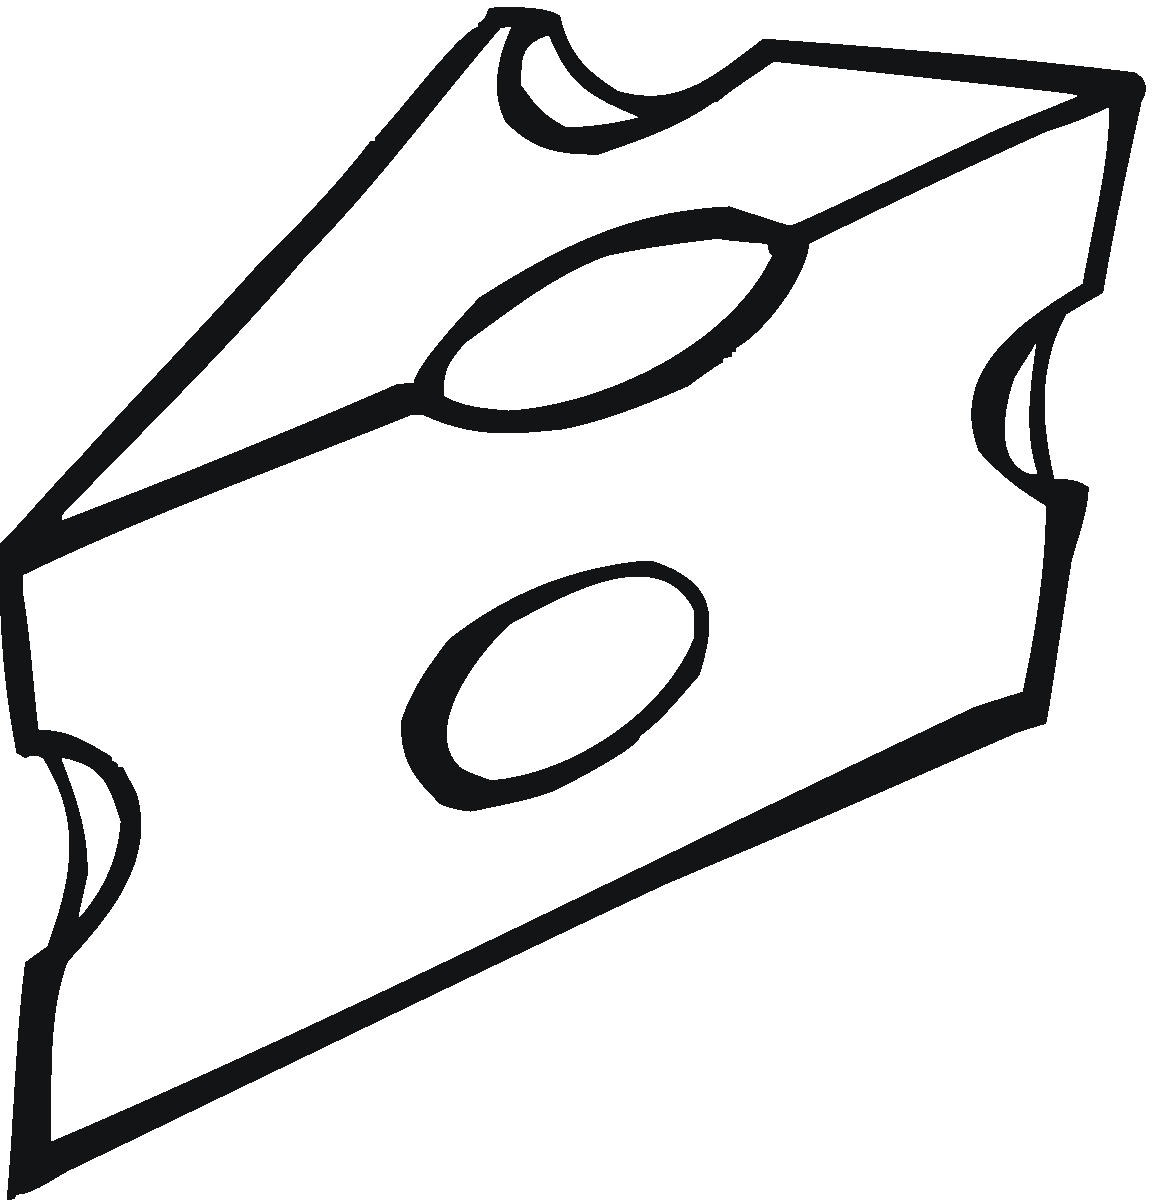 Cheese clipart black and white free clipart image image.